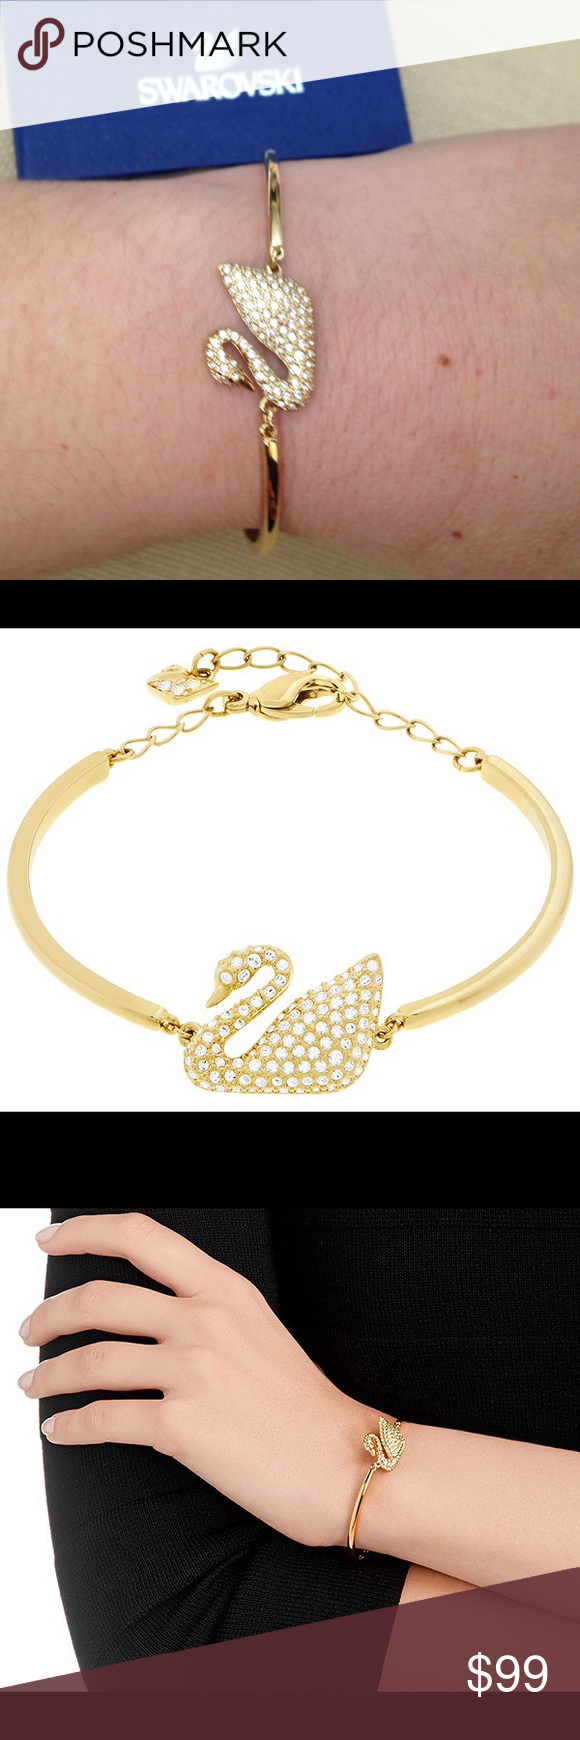 SWAROVSKI Swan Bangle Swan Bangle This refined and timeless gold-plated  bracelet boasts the iconic 6c9d23f6e2